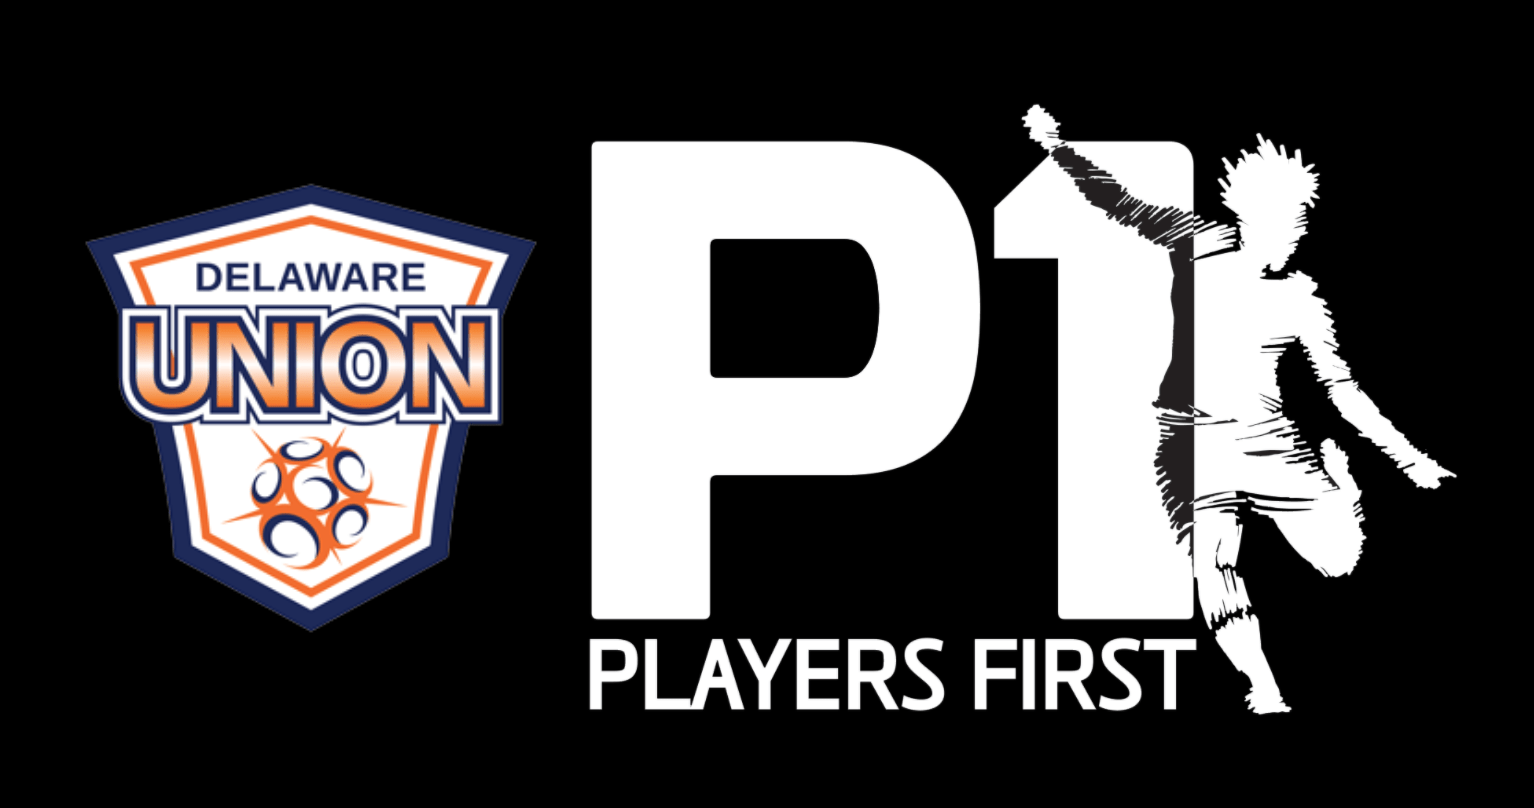 Delaware FC congratulates Delaware Union for achieving Player First recognition by US Club Soccer